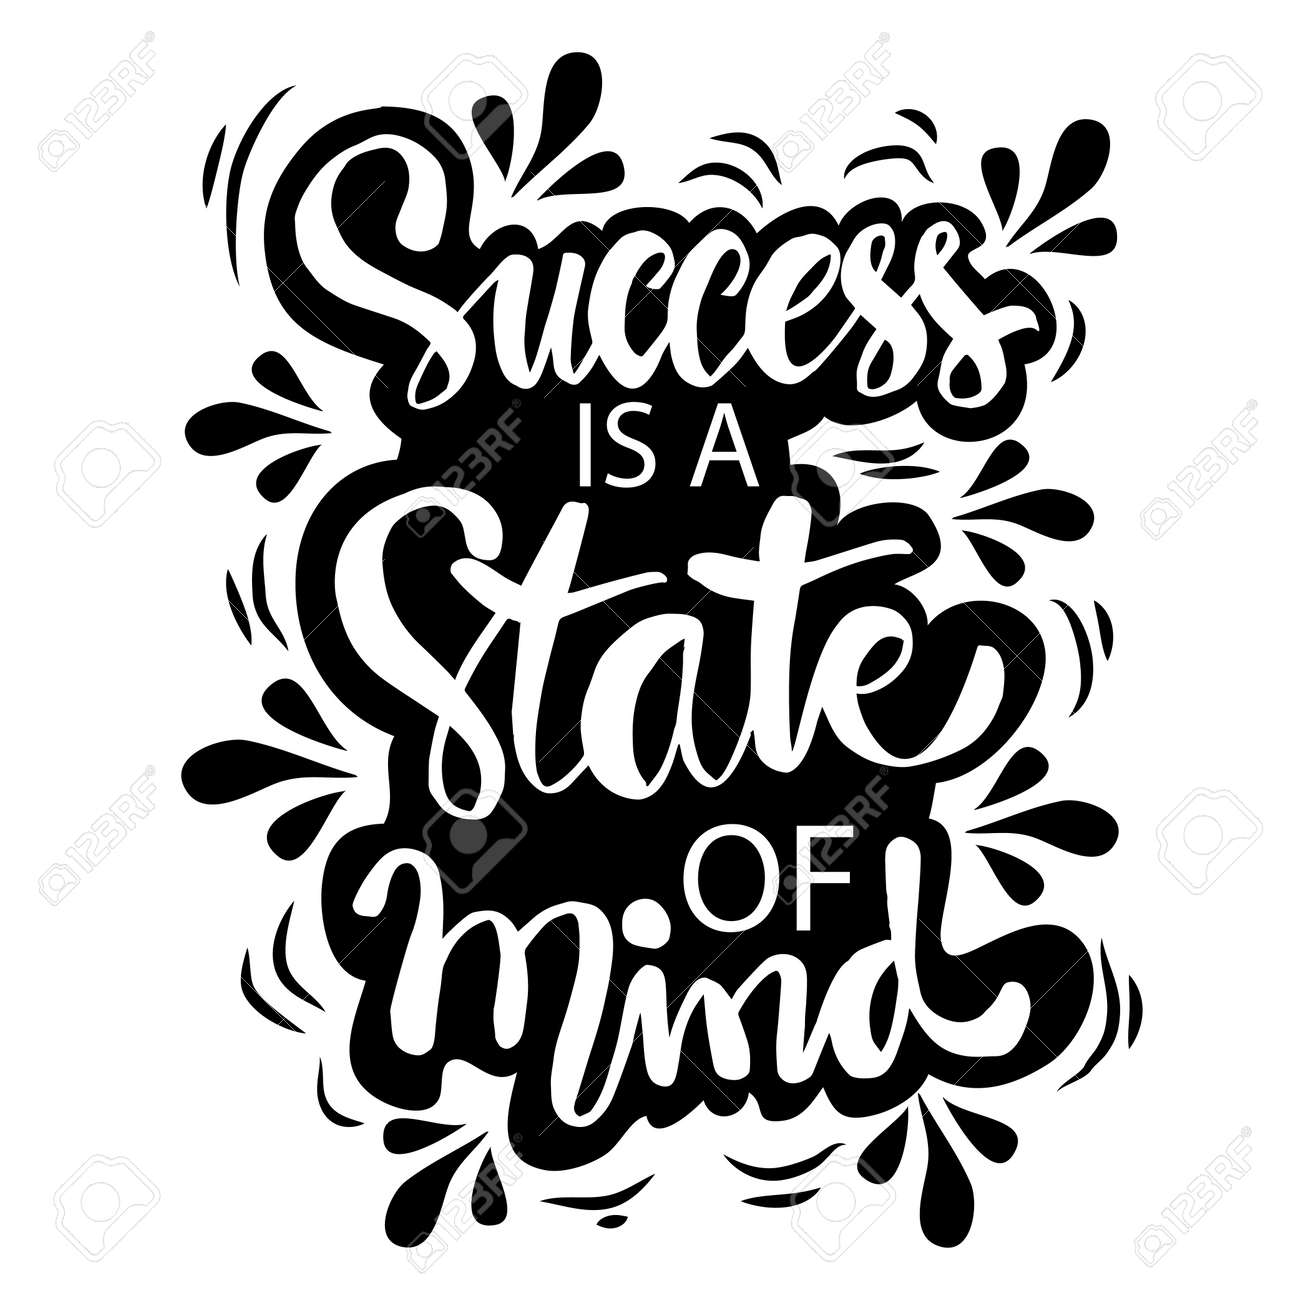 Success is a state of mind hand lettering. Inspirational quotes. - 153375879